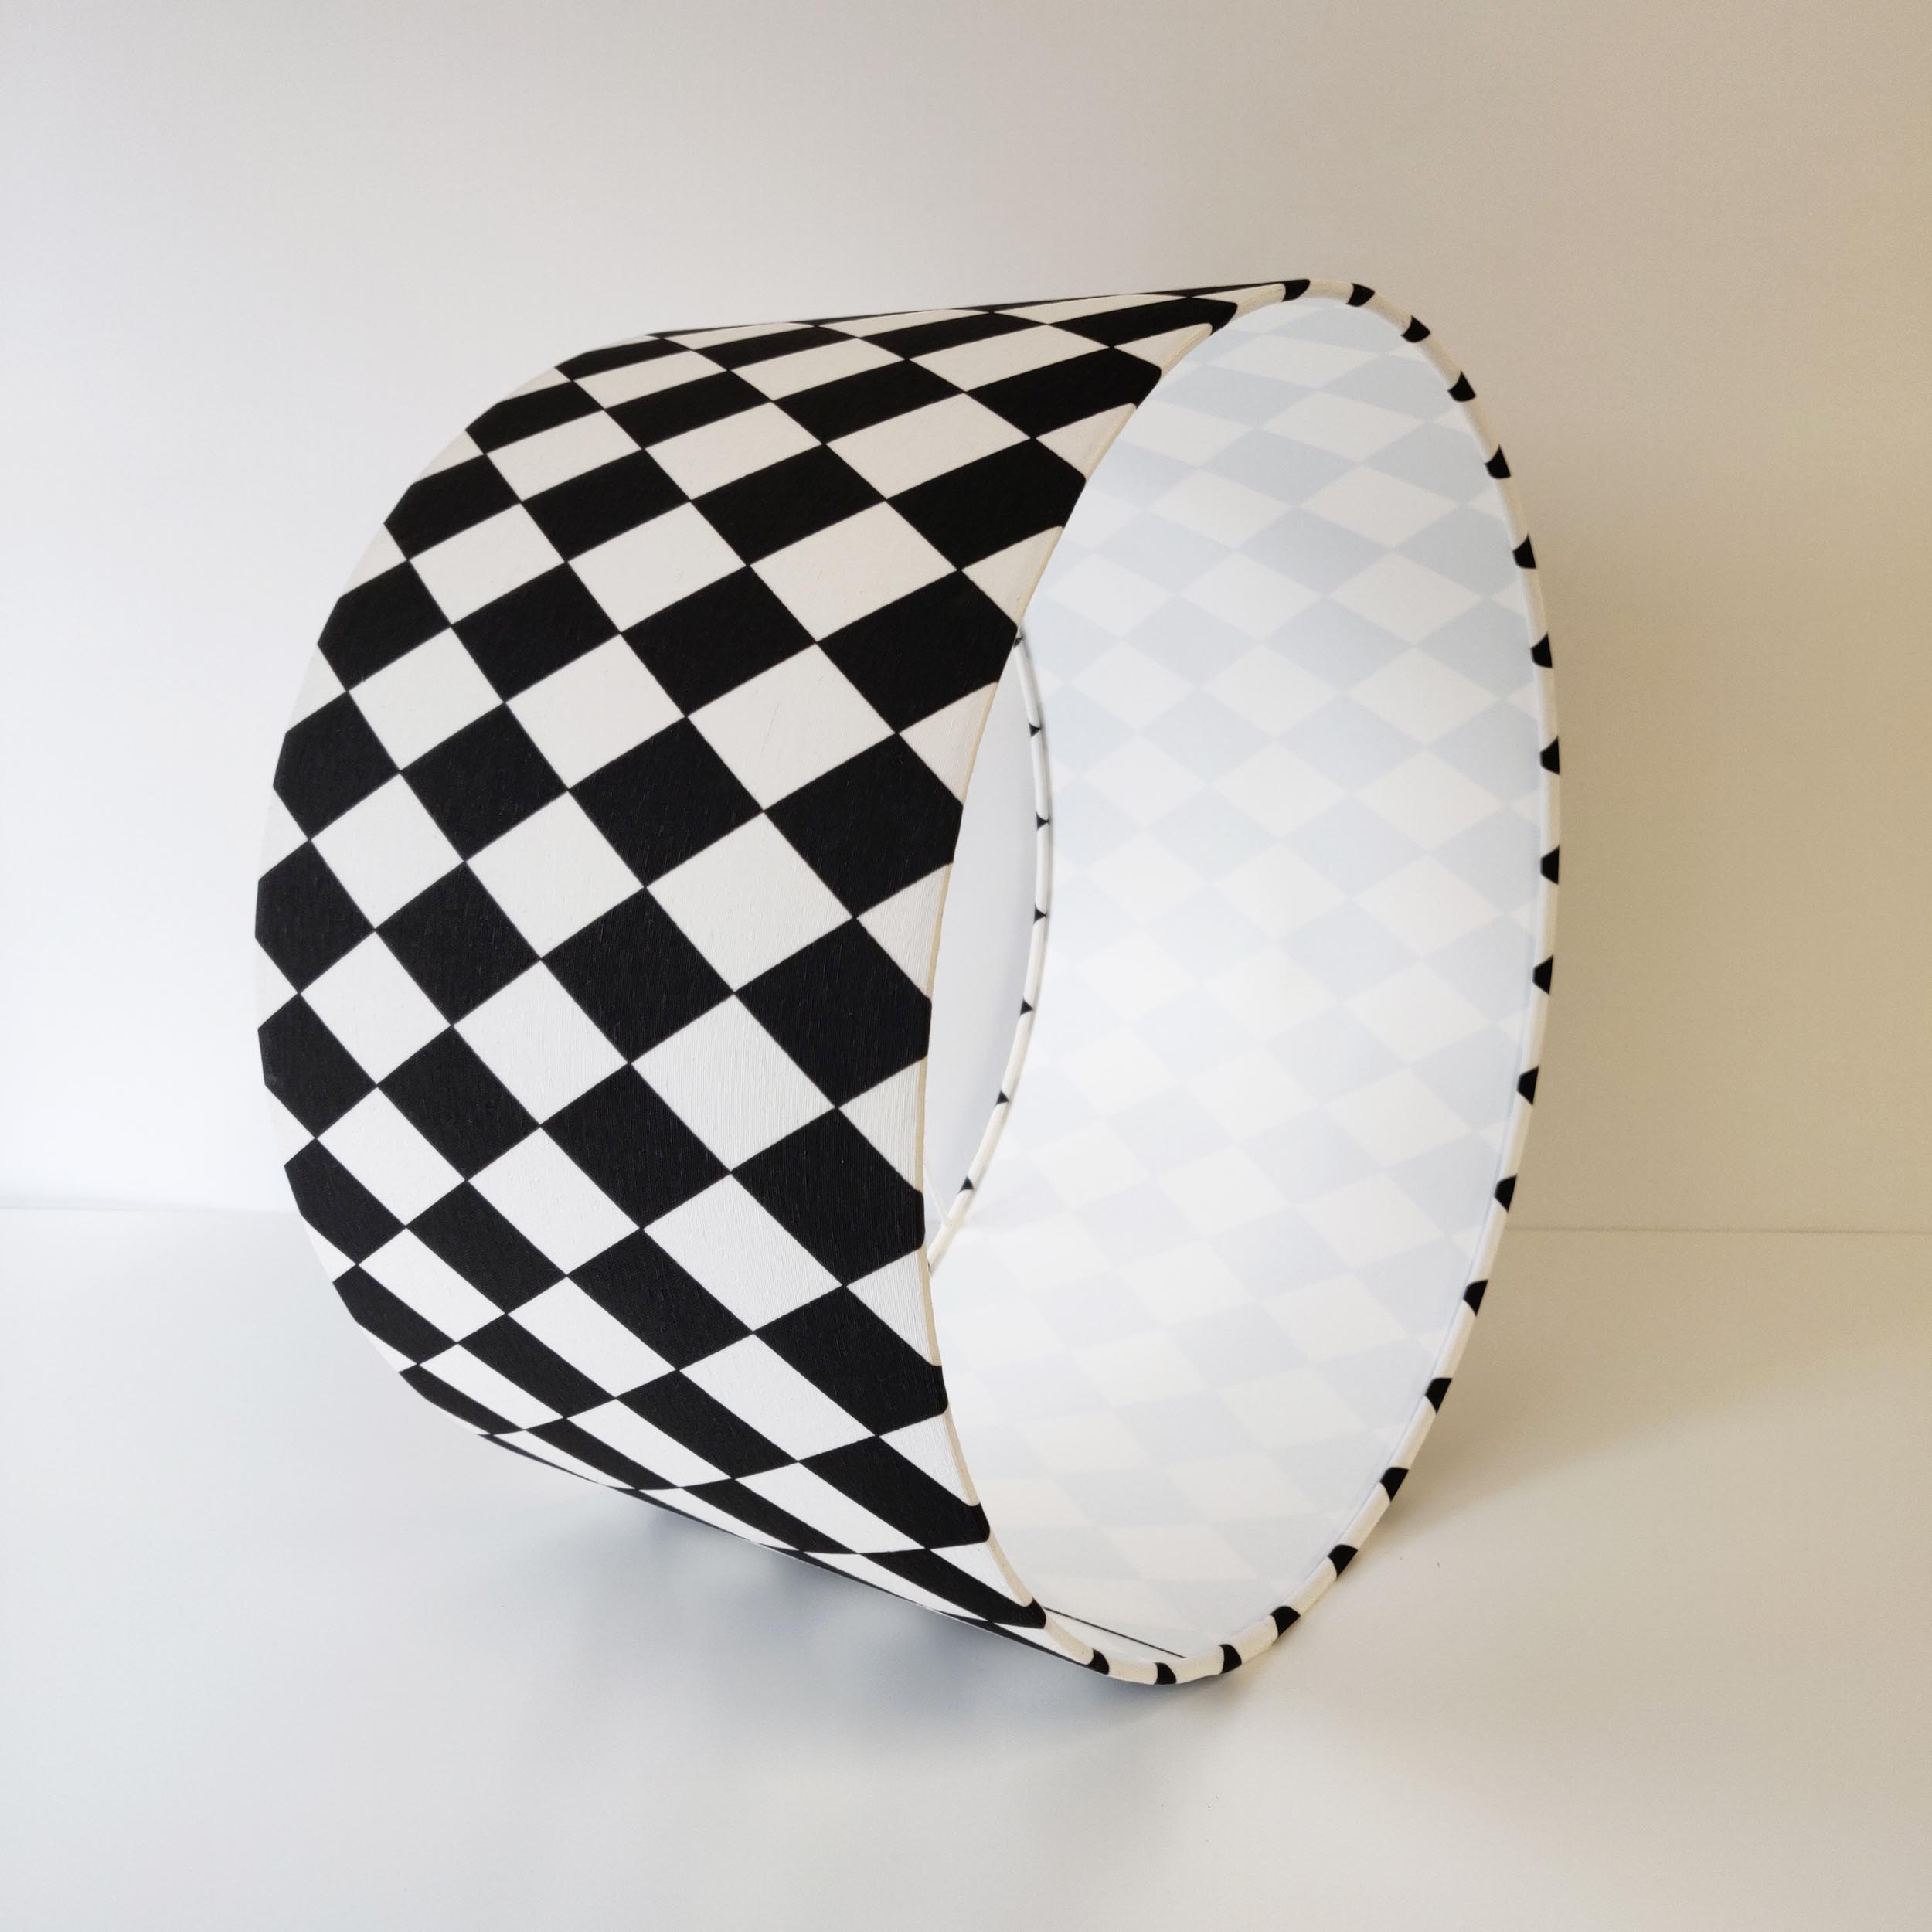 Black and White Monochrome Lampshade with Diffuser Option